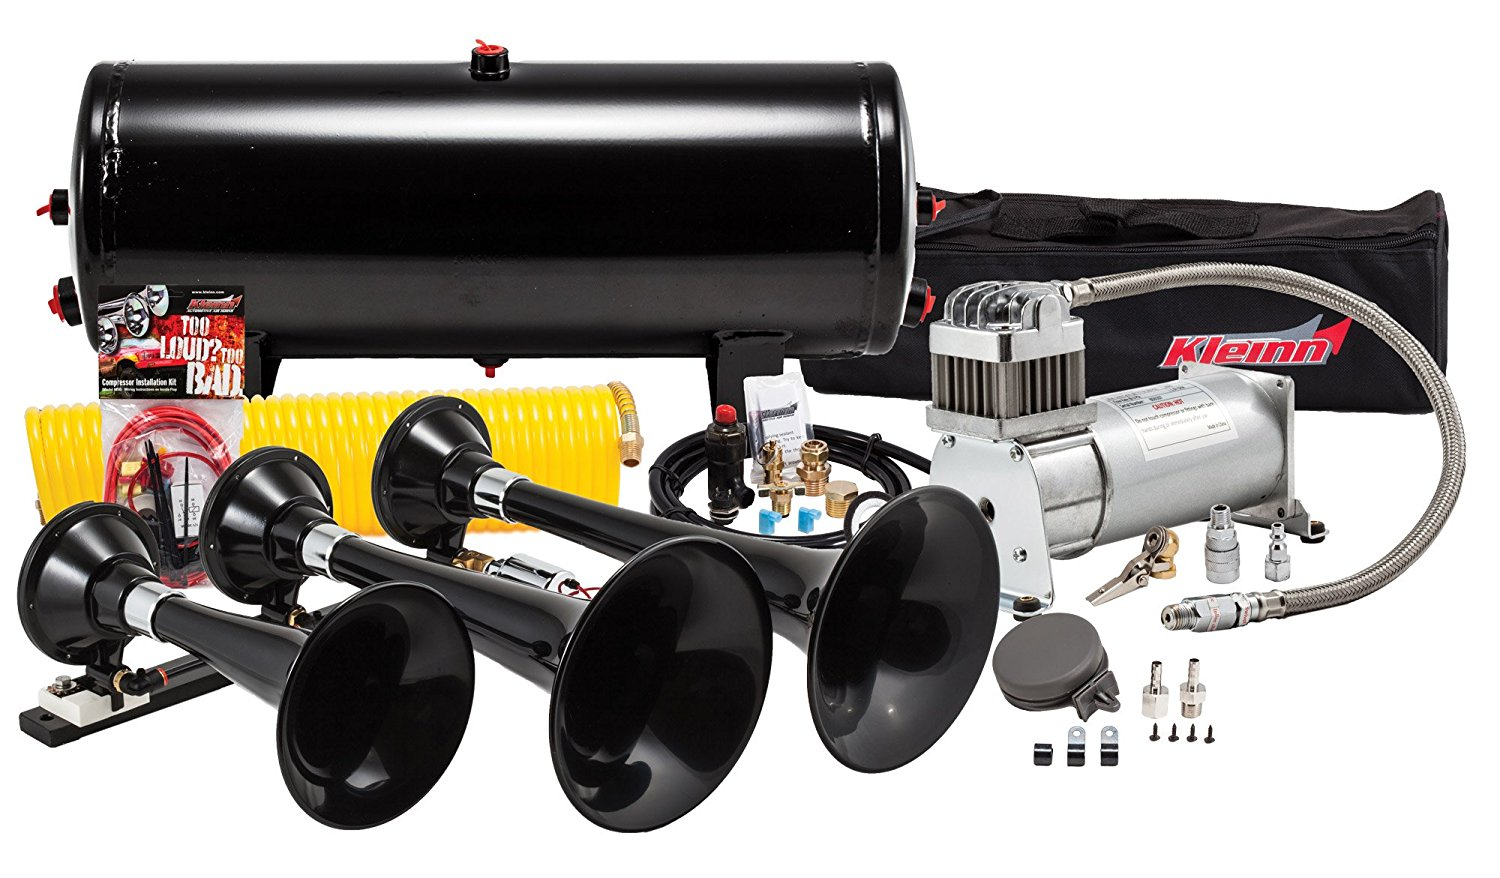 make your truck's bark match its bite with the kleinn hk7 train horn kit   when it's time to step up your sound game, there's only one air horn in the